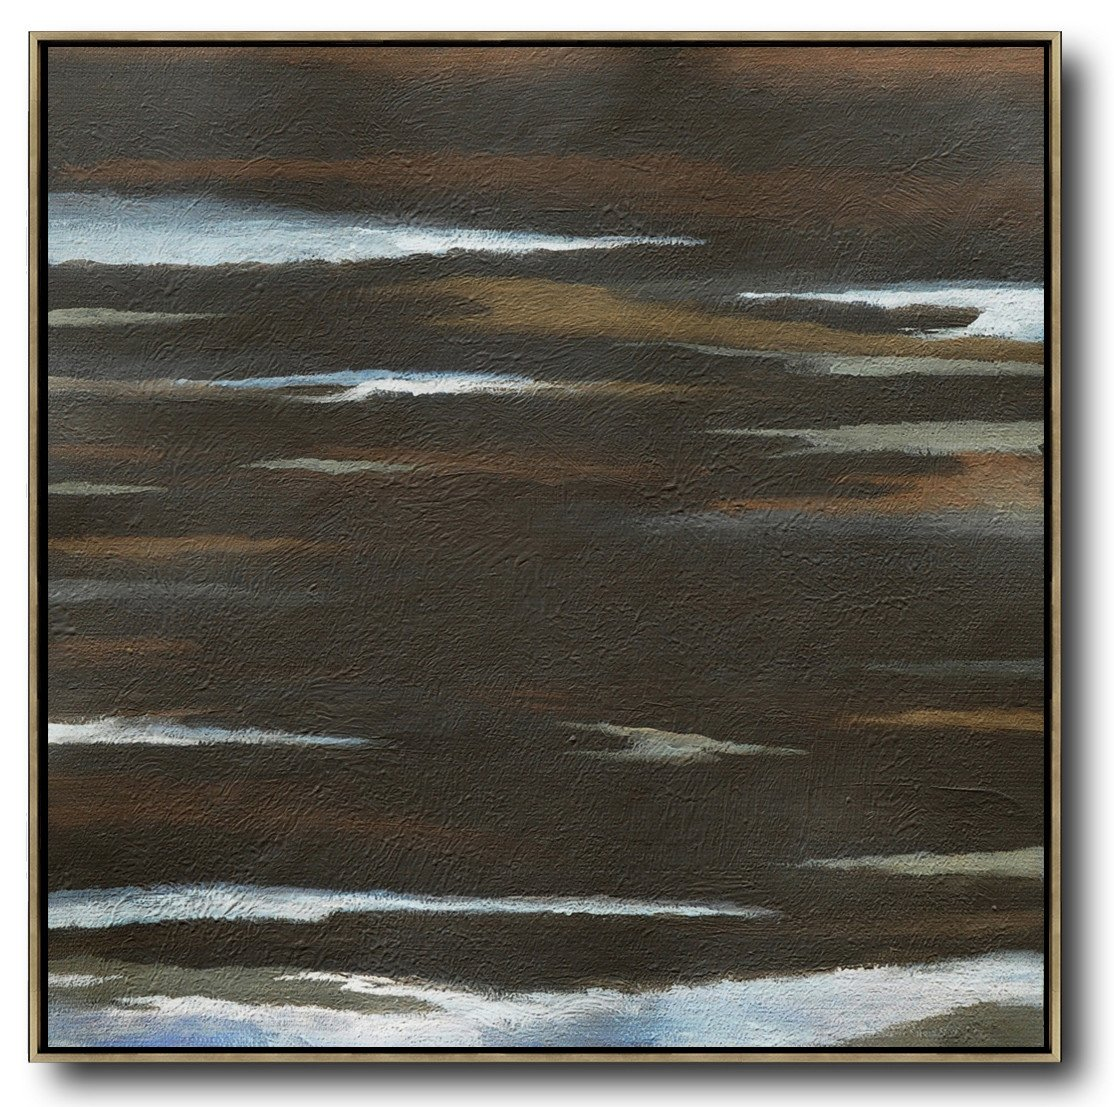 Extra Large Textured Painting On Canvas,Oversized Abstract Landscape Painting,Hand Paint Abstract Painting,Brown,White,Black.etc